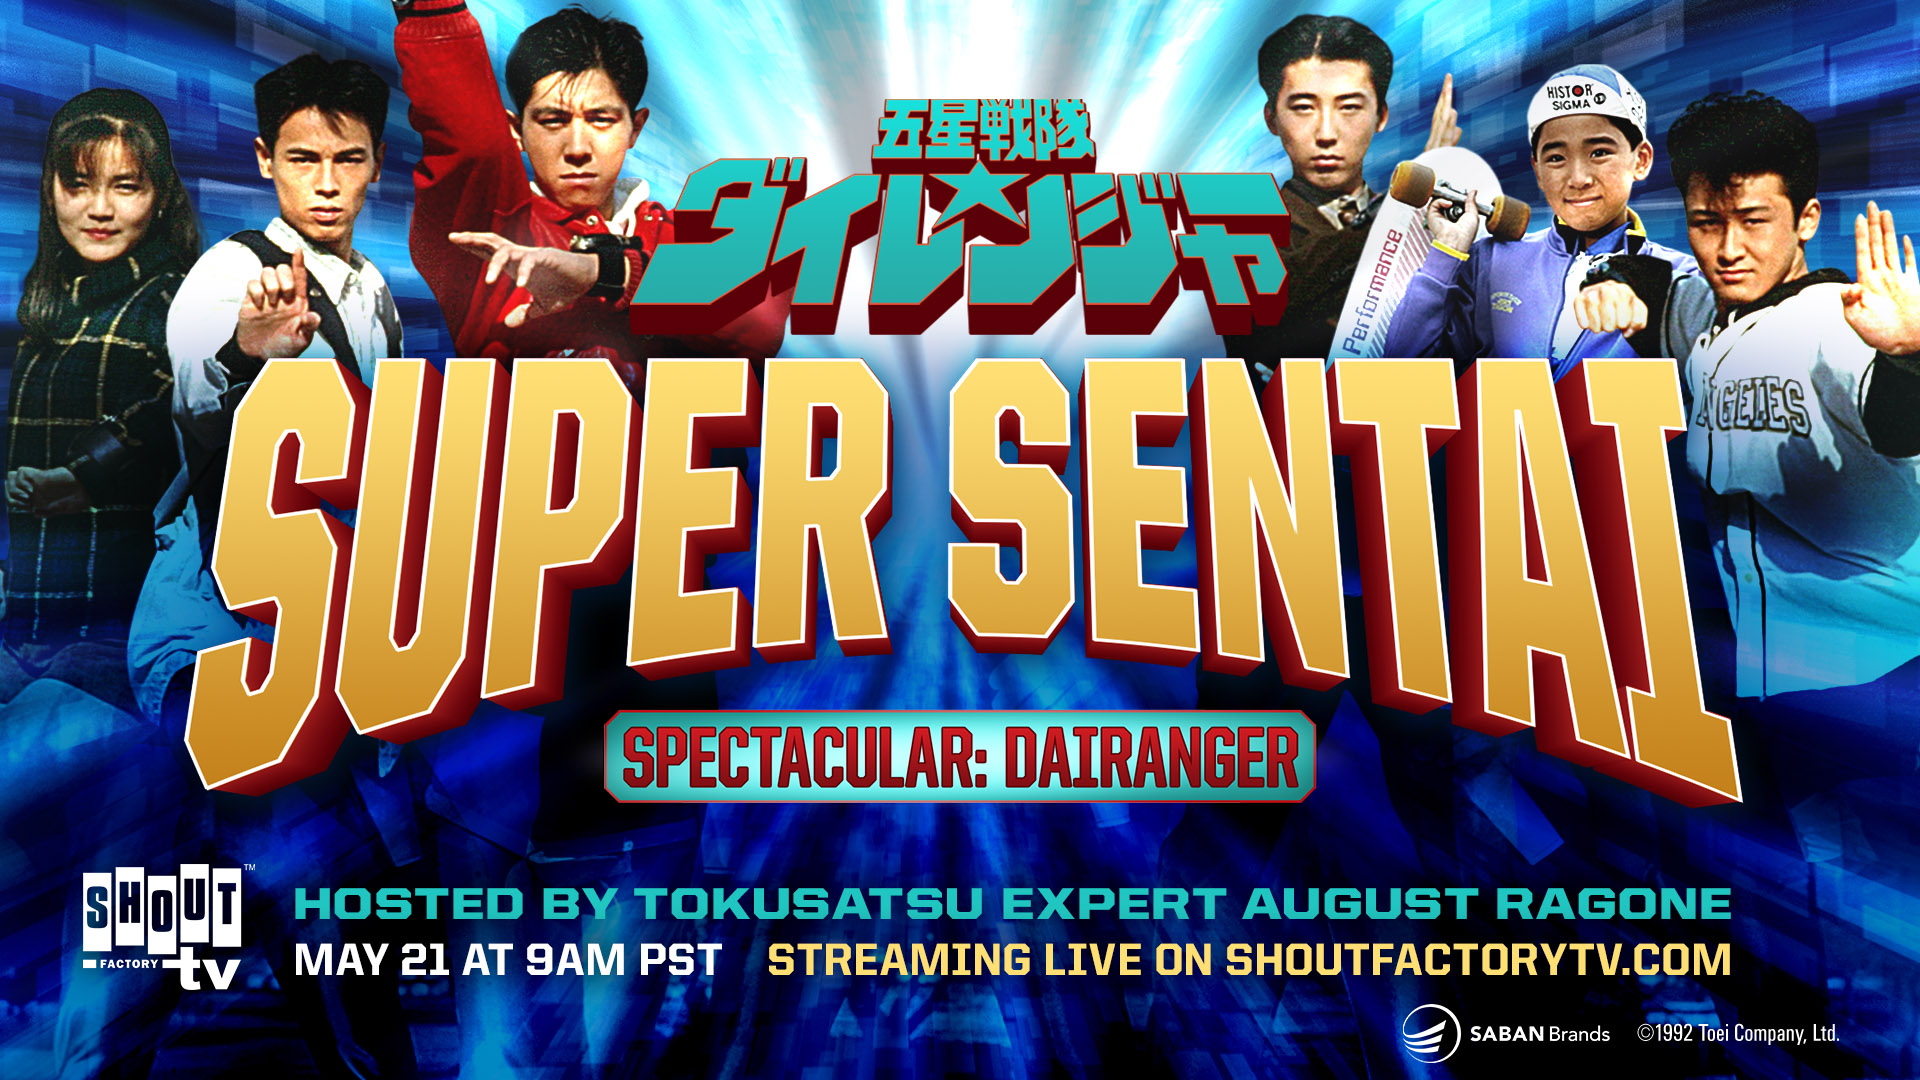 Shout! Factory TV Dairanger Marathon Schedule